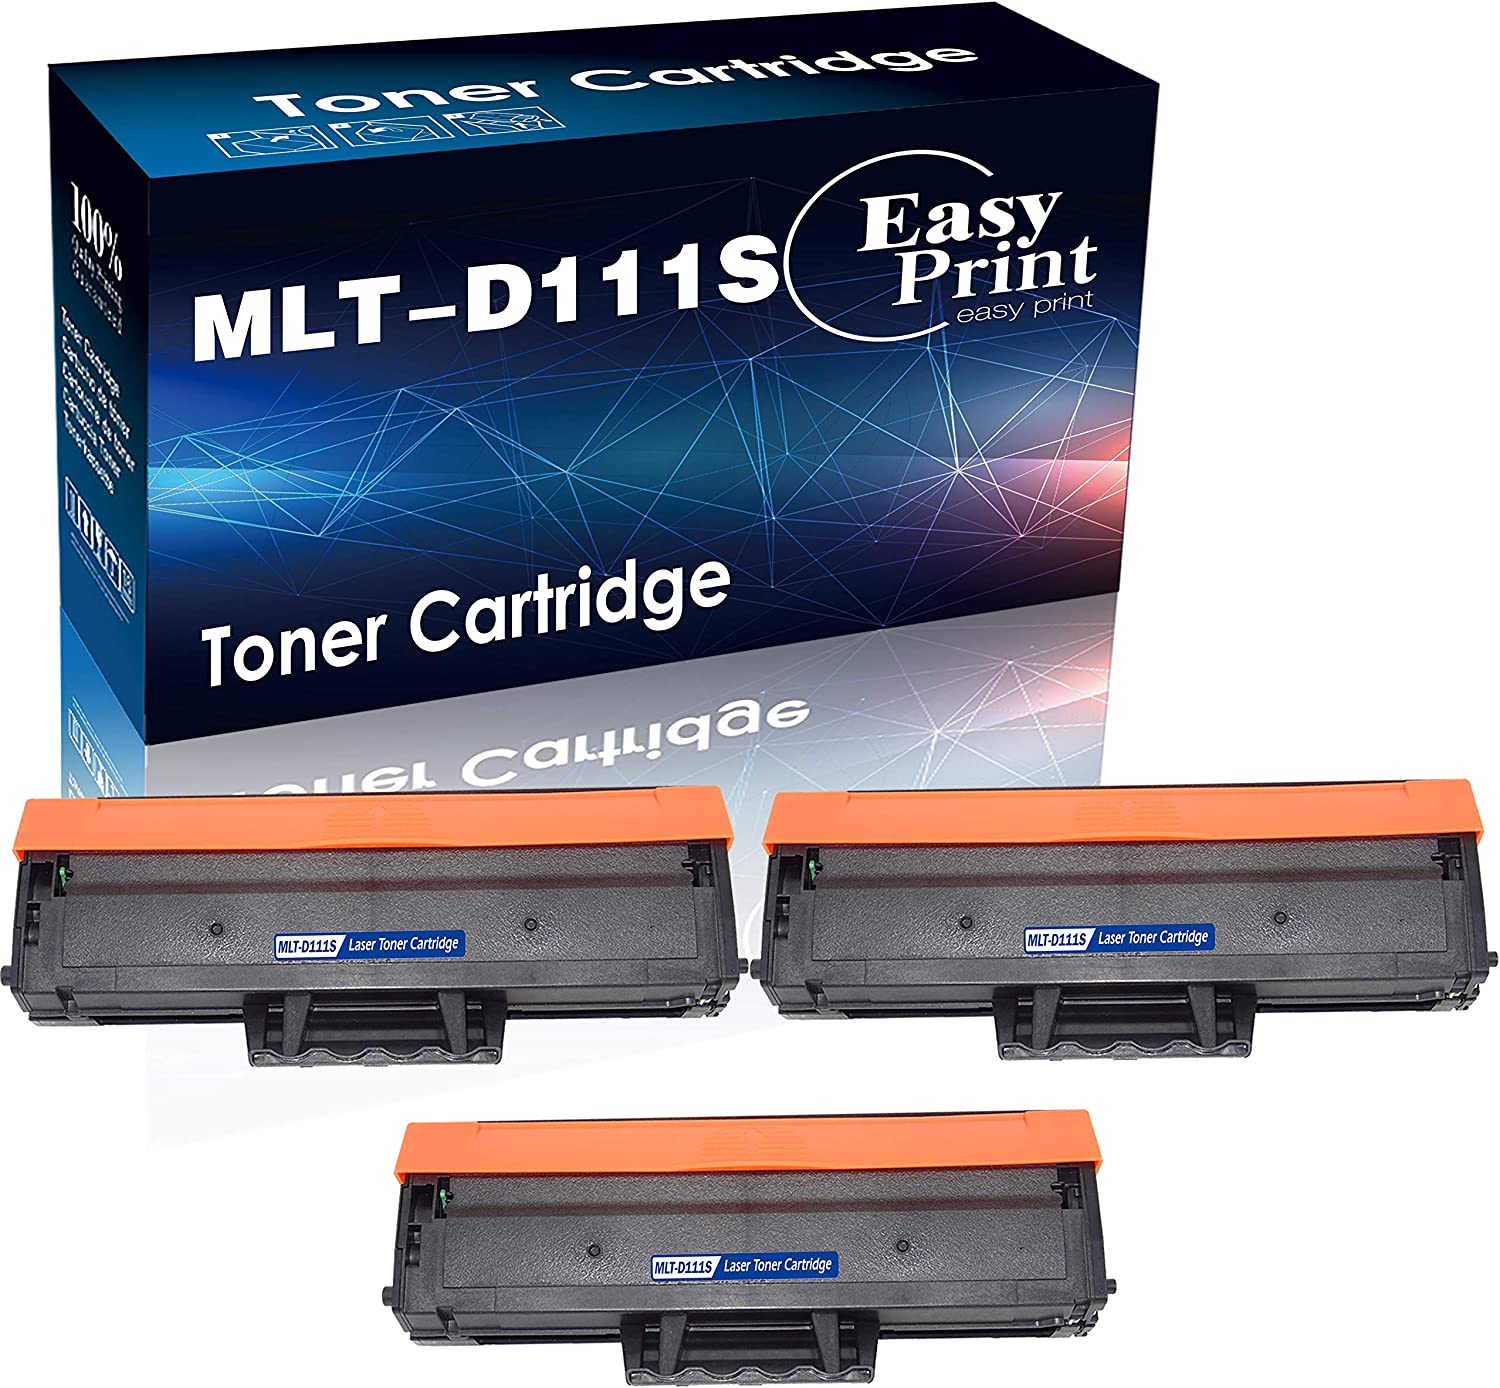 3-Pack Compatible M2020W M2074FW M2078FW Printer Toner Cartridge Used for Samsung MLT111S MLT-D111S 111S Toner Cartridge D111S, Sold by EasyPrint